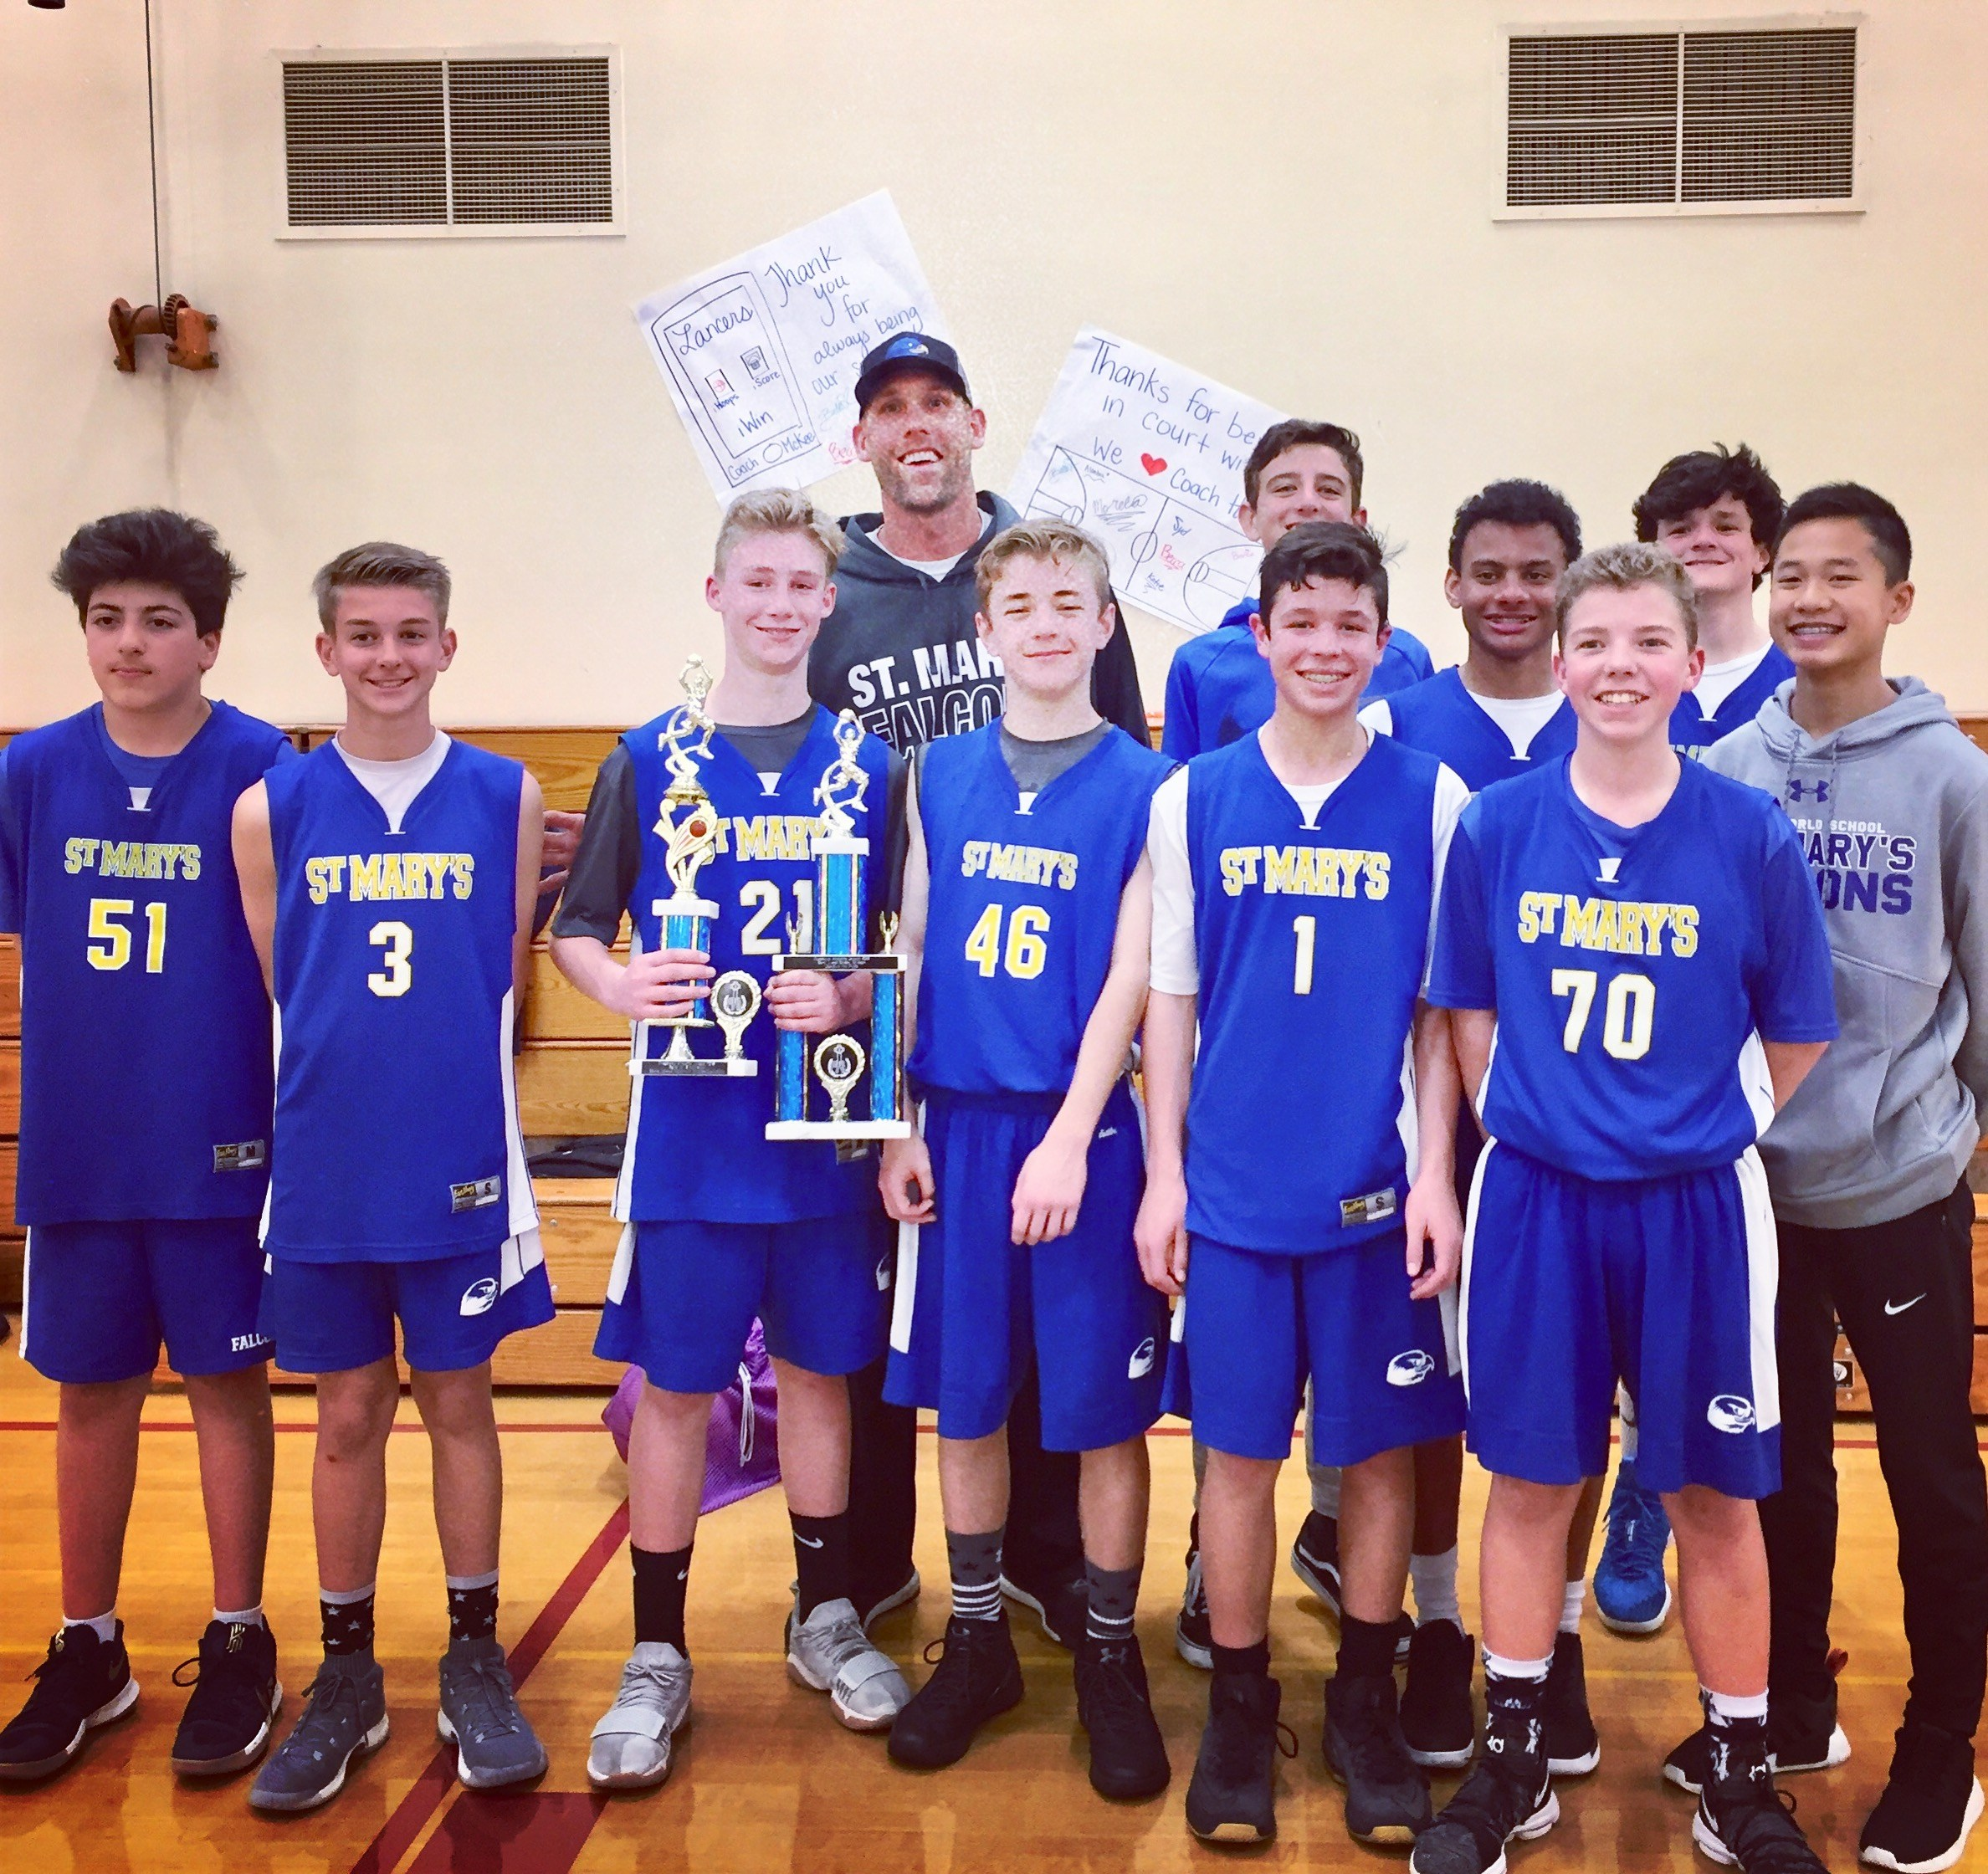 Congratulations to our Mountain A & Canyon B Basketball Teams for winning the PAL League Championships!